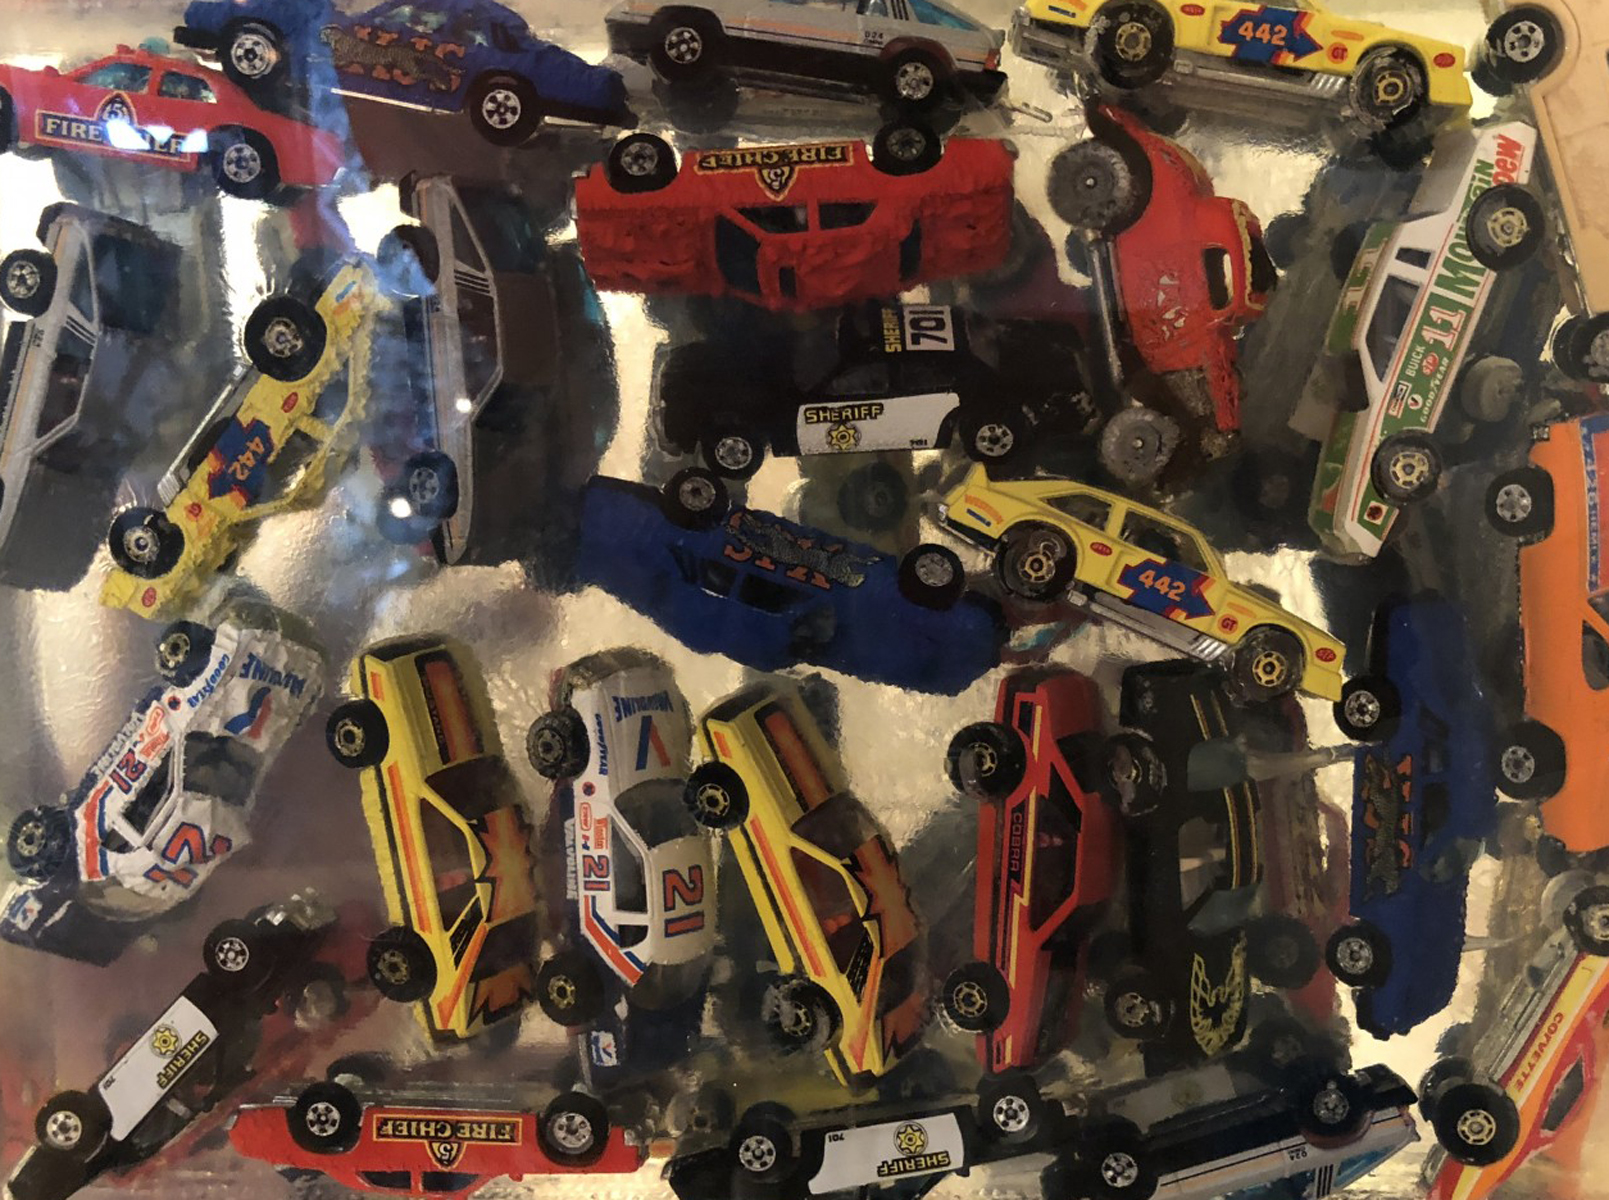 Car Accumulation (Matchbox Cars)  Resin Sculpture 1985 12 in